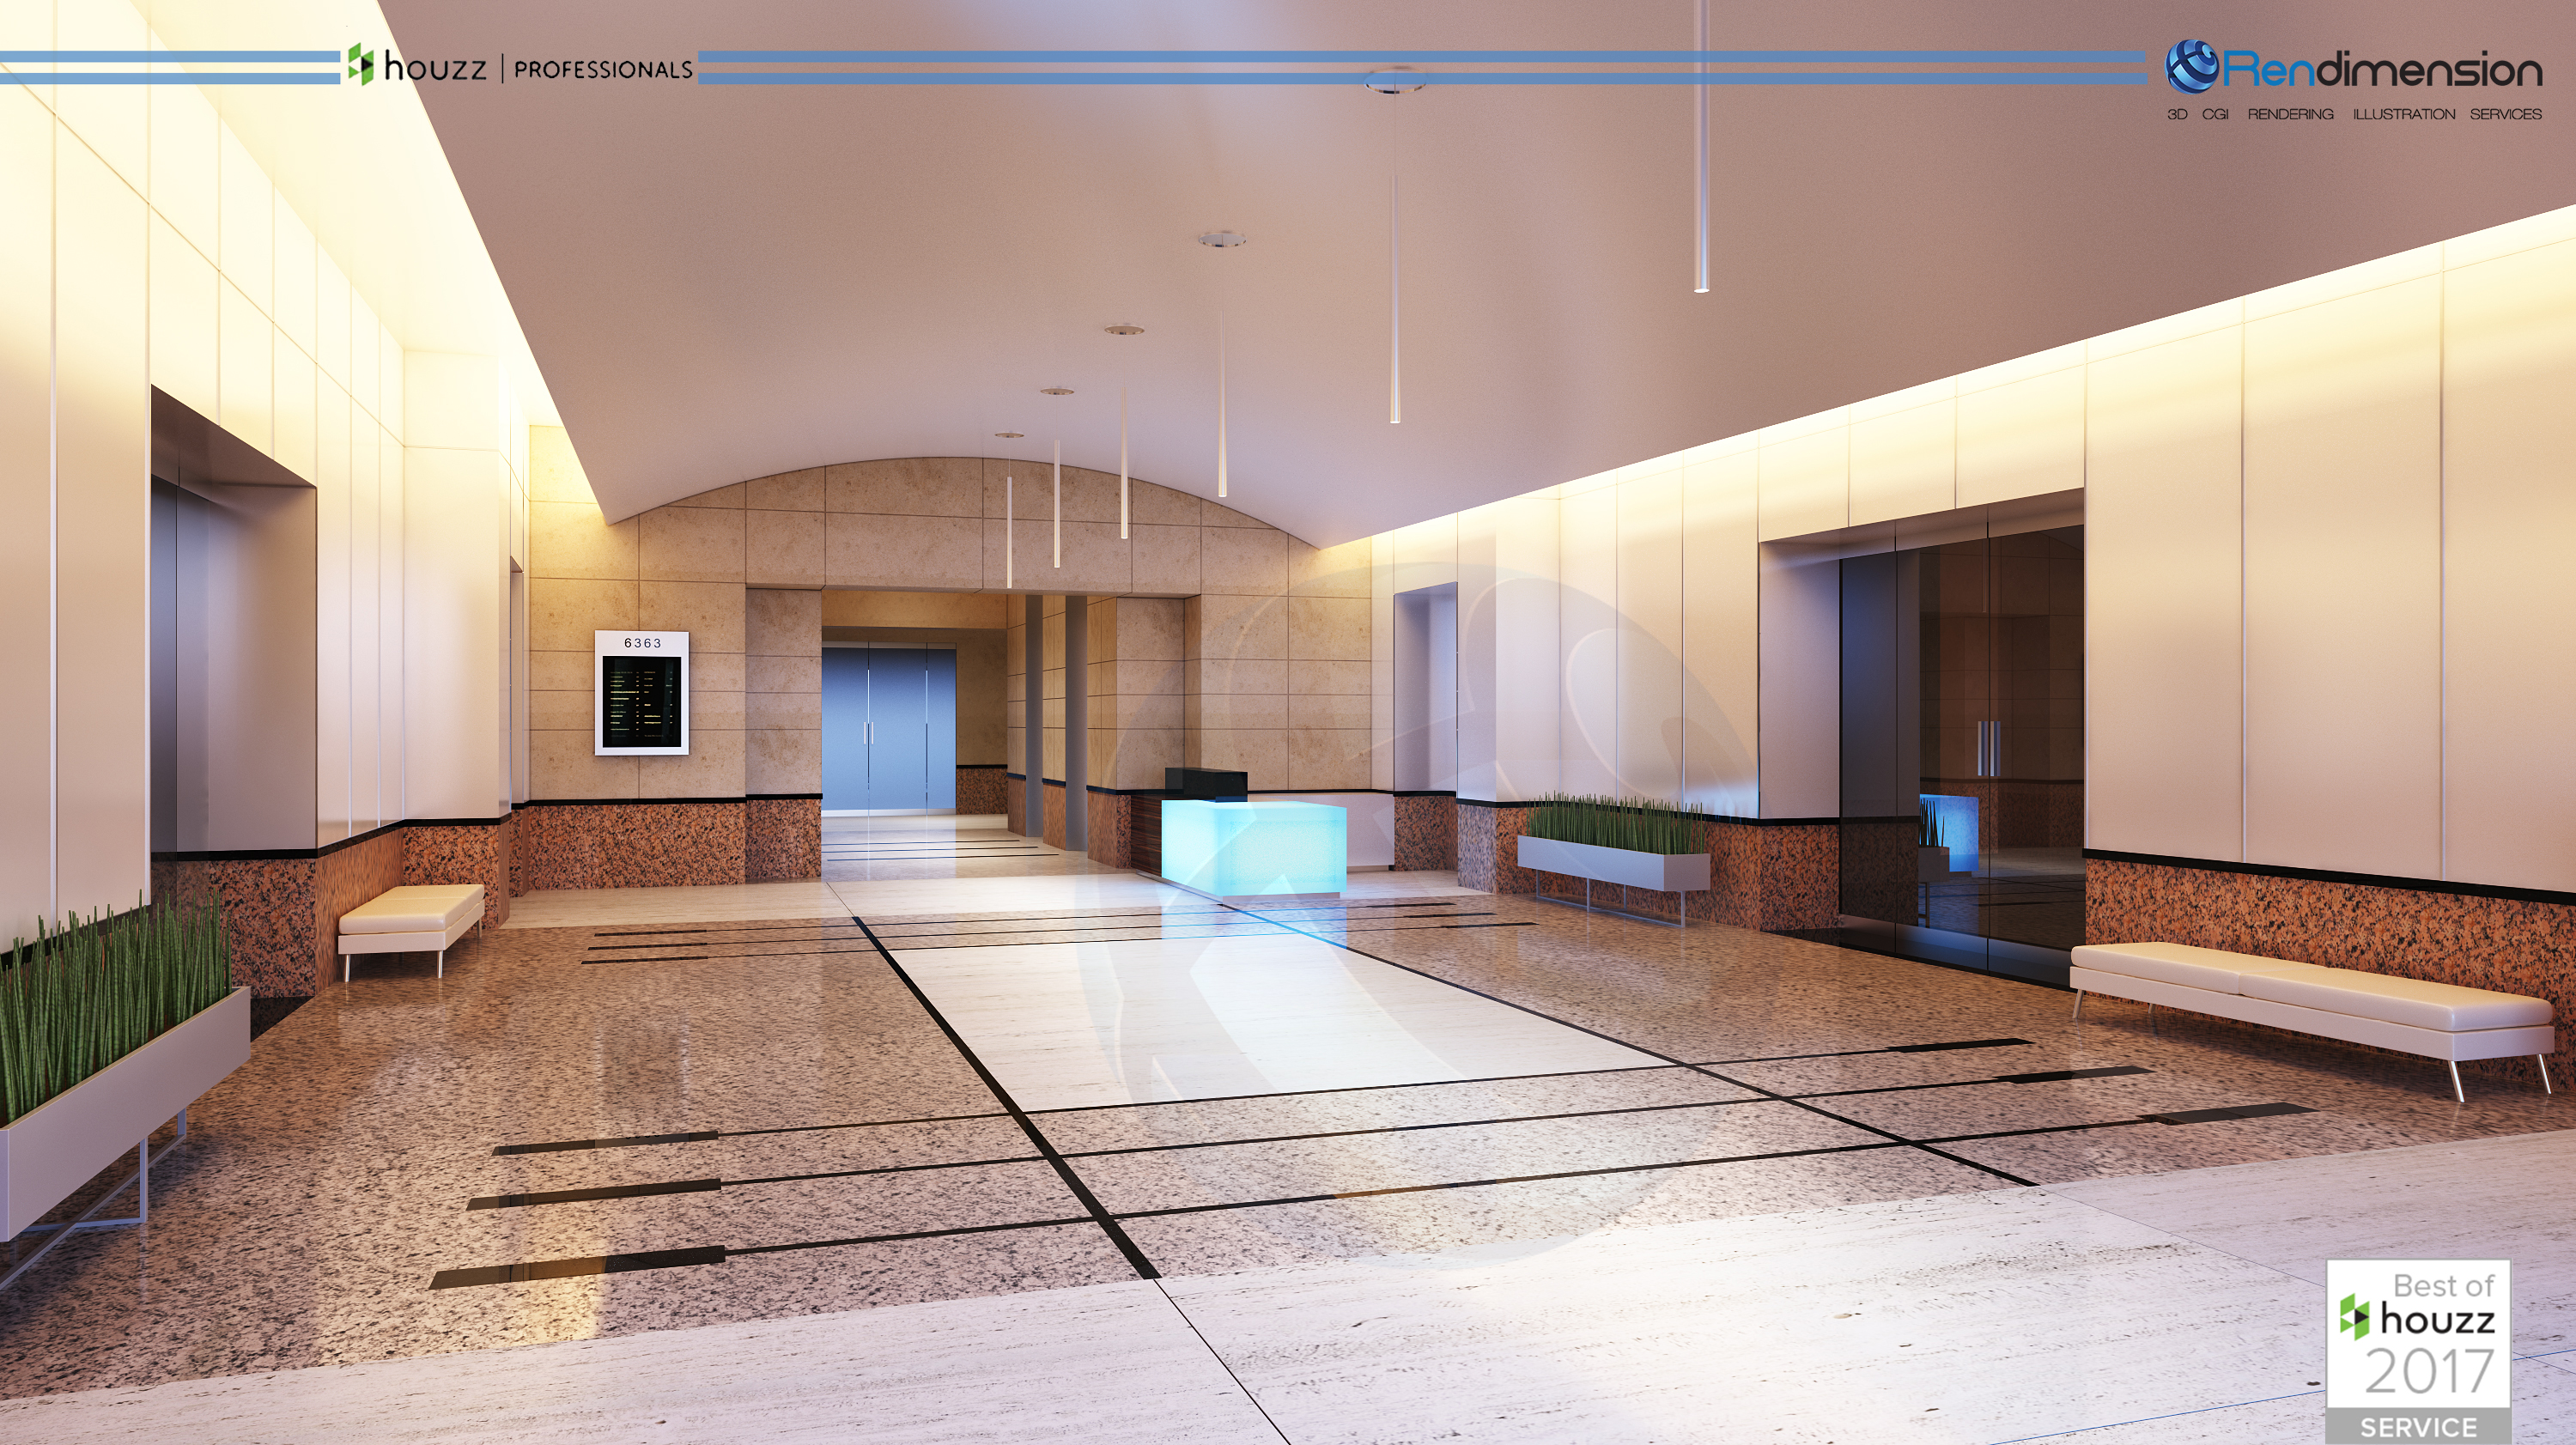 3D Hospitality 3d rendering offices 3d rendimension COMPANY RENDERING COMPANY 1 ARCHITECTURAL CALIFO